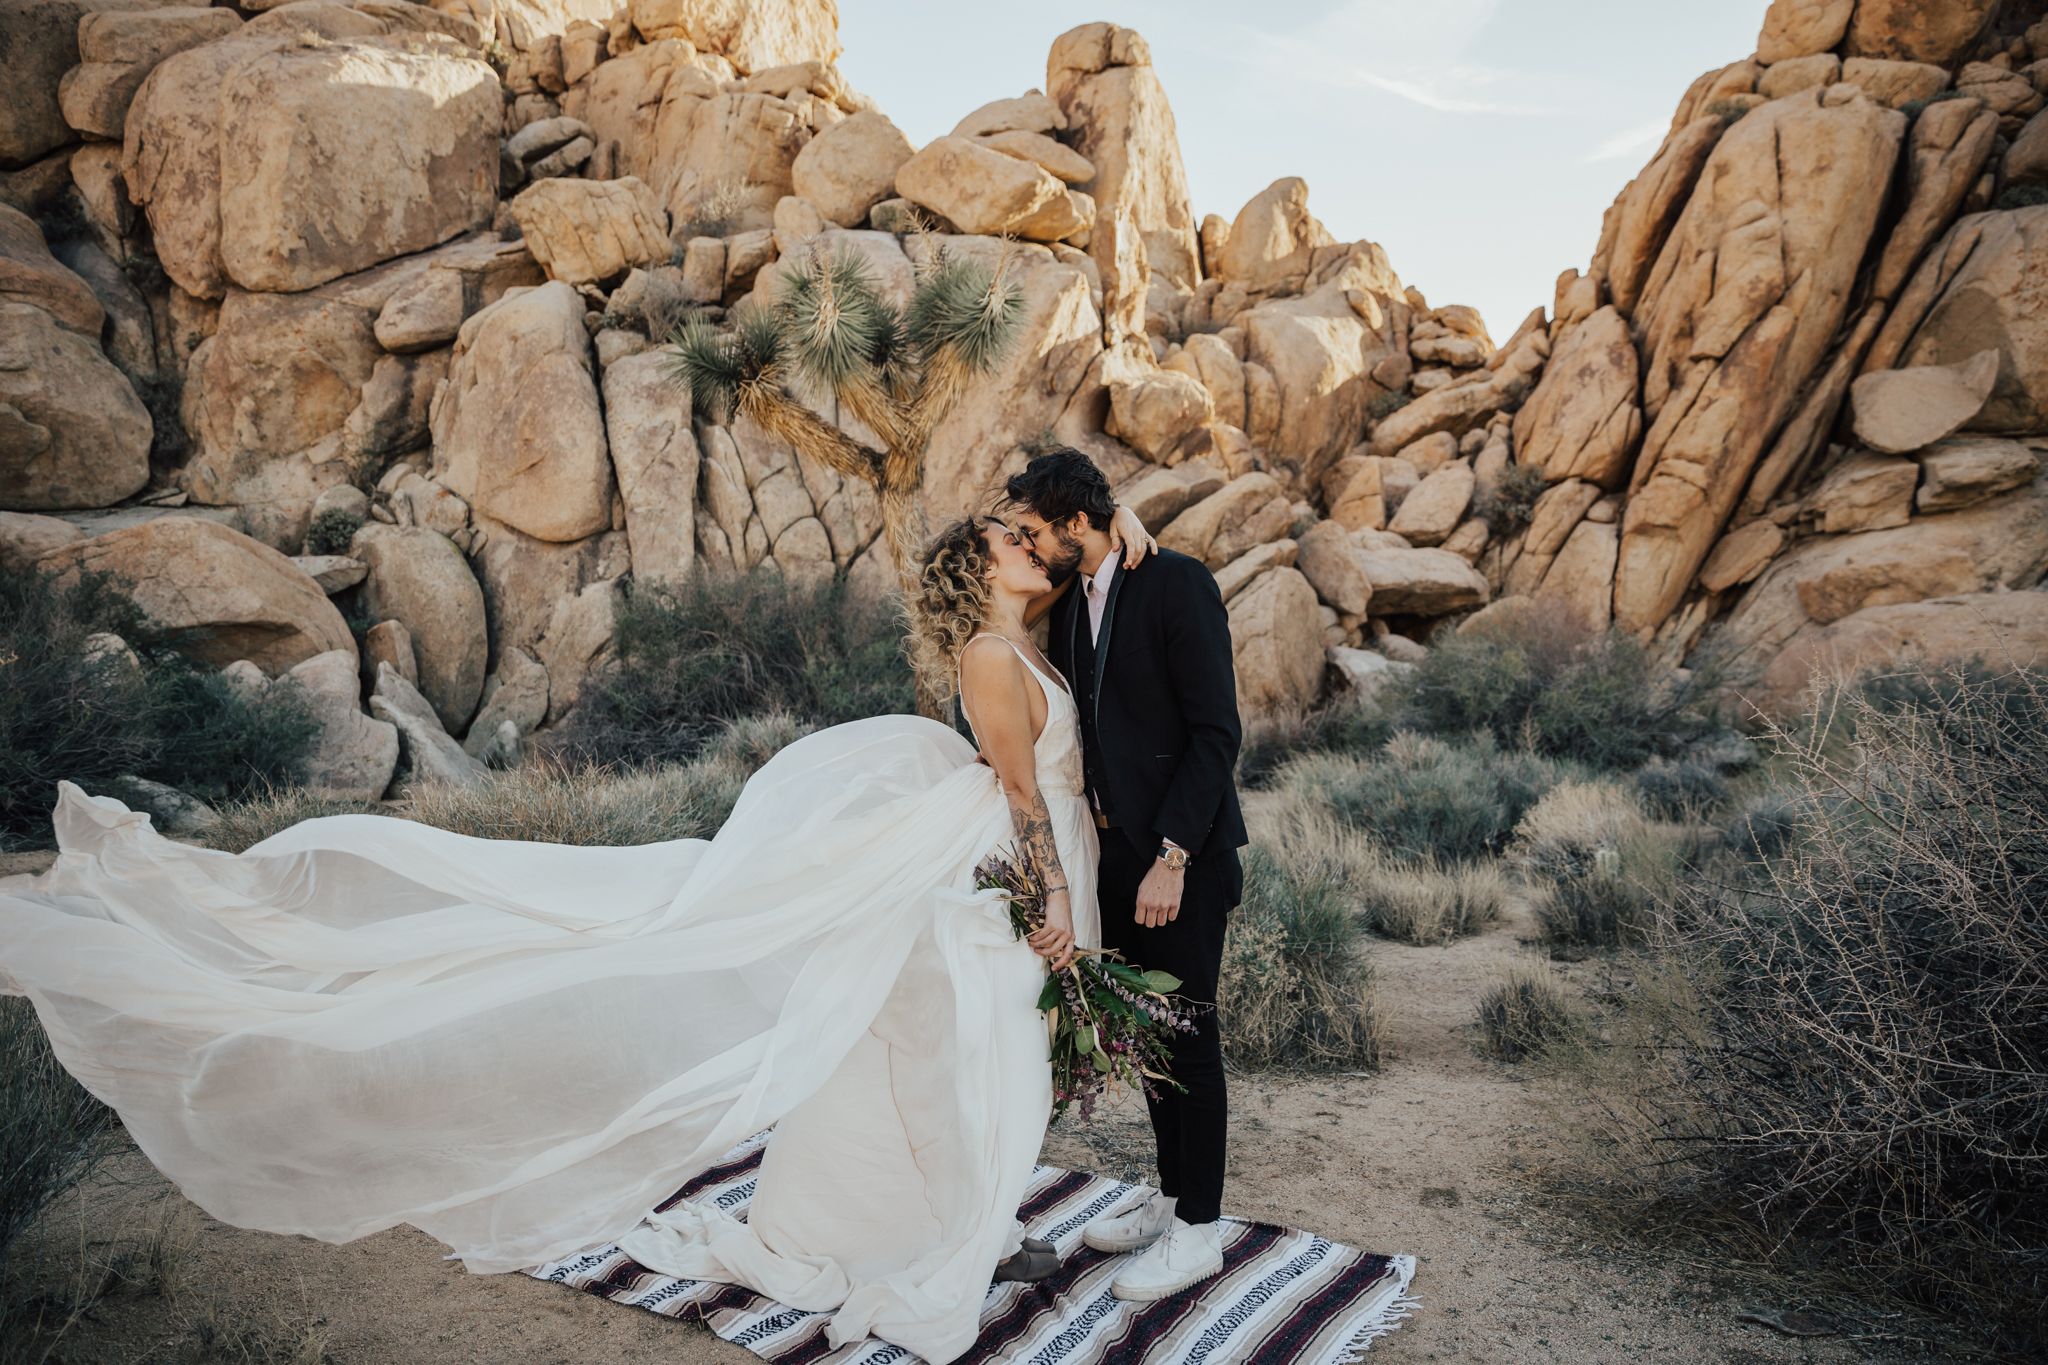 California Desert Elopement